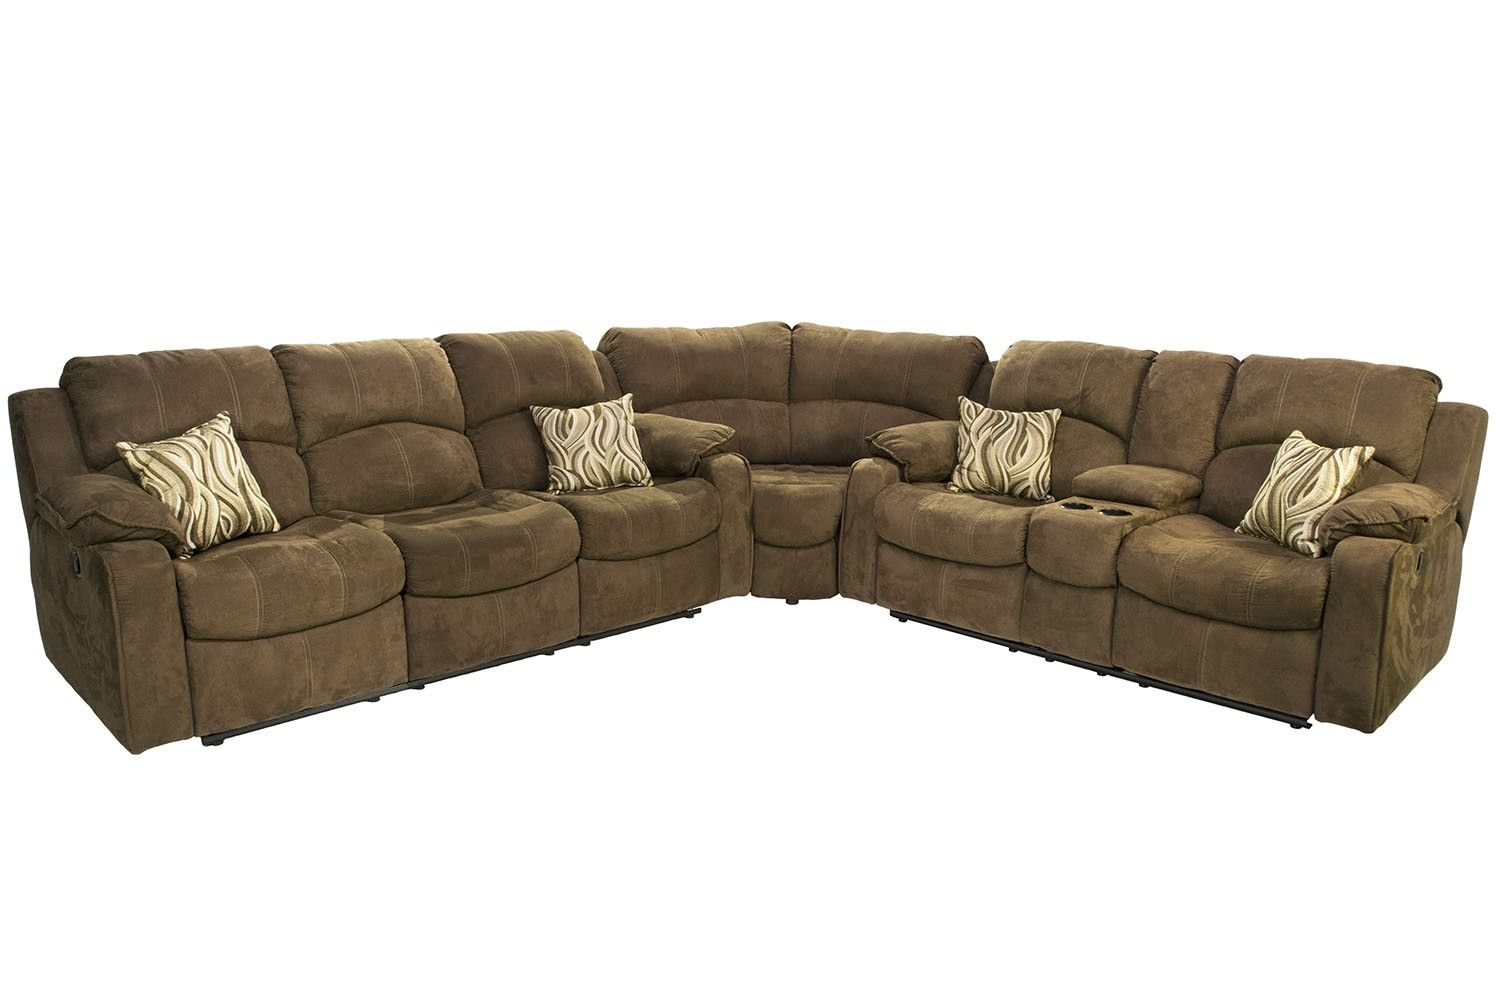 Tornado Chocolate Reclining Sofa Loveseat Sectional Sectionals Living Room Mor Furniture